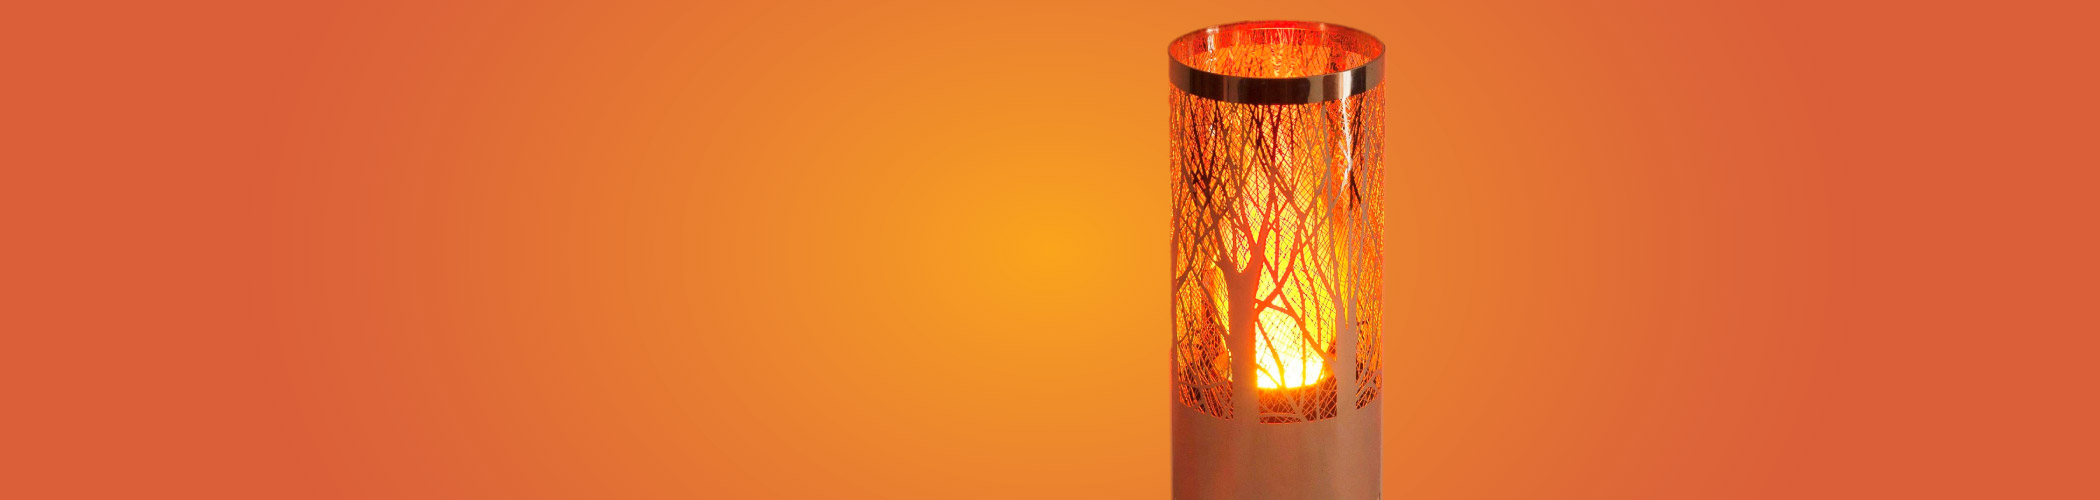 Flamelights - We have over 50 different styles of Silk Flamelight in a diverse range of materials such as rattan, steel, bamboo, terracotta and leather.#View Range